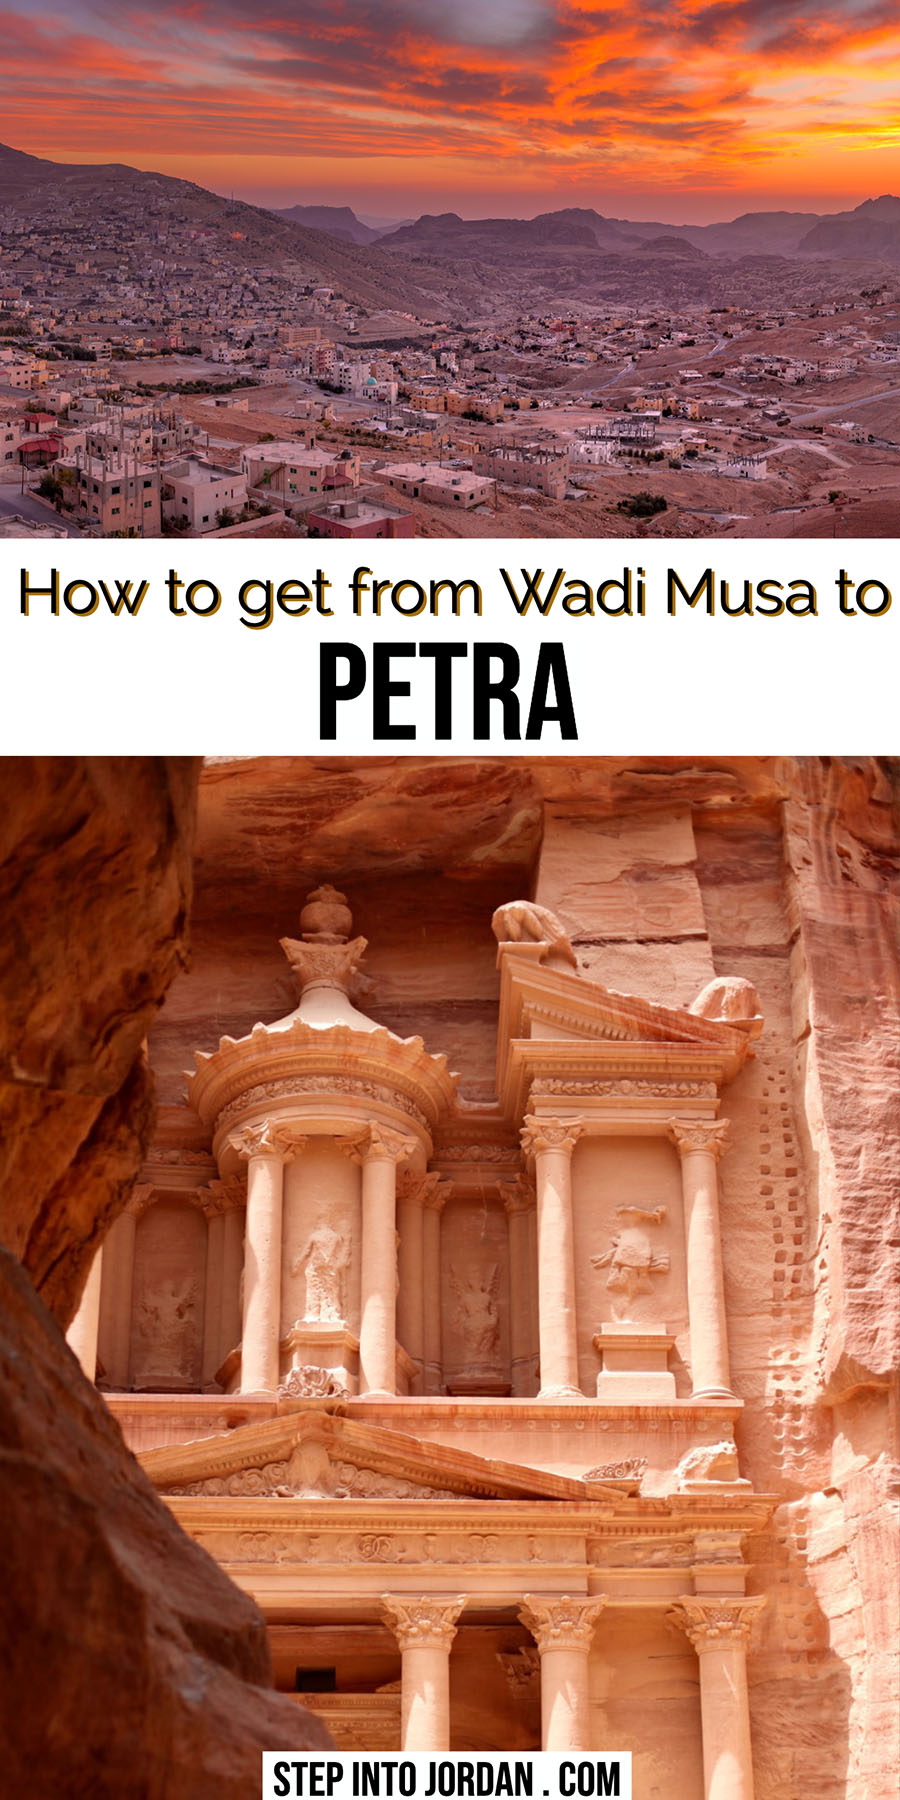 How to get from Wadi Musa to Petra